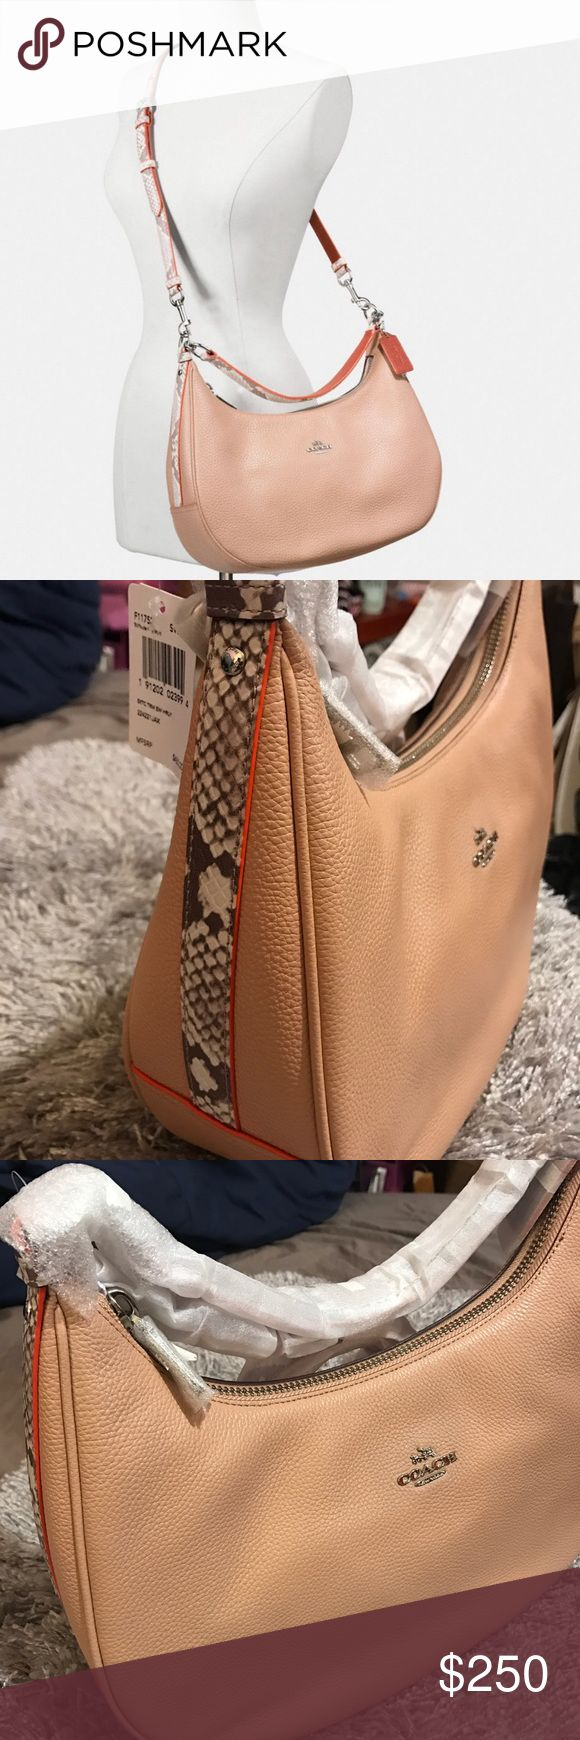 BRAND NEW coach handbag (Authentic) HARLEY EAST/WEST HOBO IN PEBBLE LEATHER WITH PYTHON EMBOSSED TRIM. Brand new still in plastic bag never used. Received as a gift. Very versatile and can be used as an everyday bag. Super cute. Coach Bags Crossbody Bags